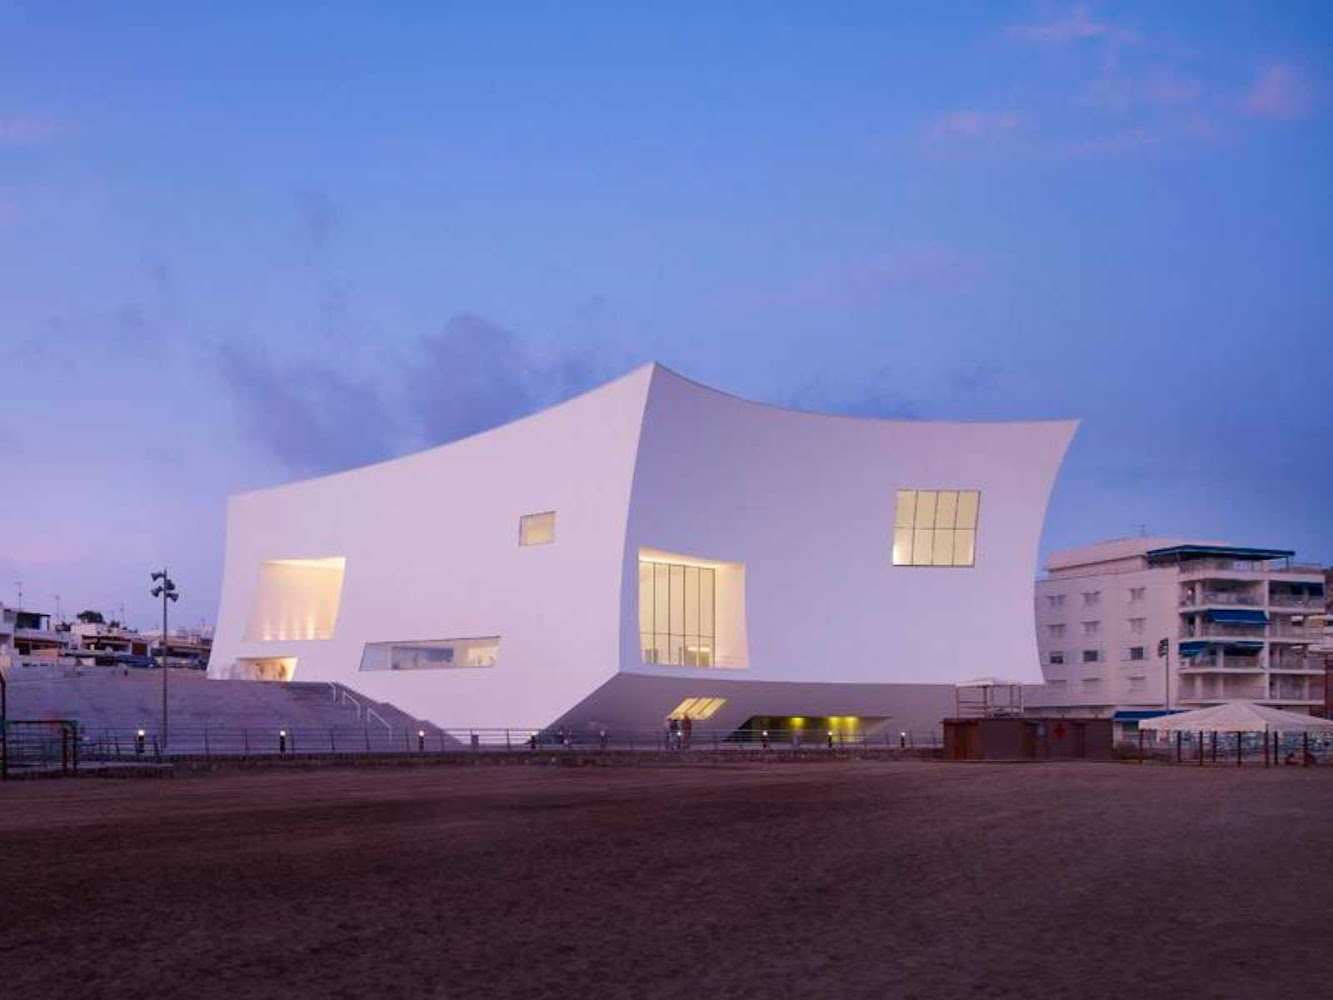 Águilas, Murcia, Spagna: Auditorium And Congress Palace Infanta DoÑA Elena by Estudio Barozzi Veiga